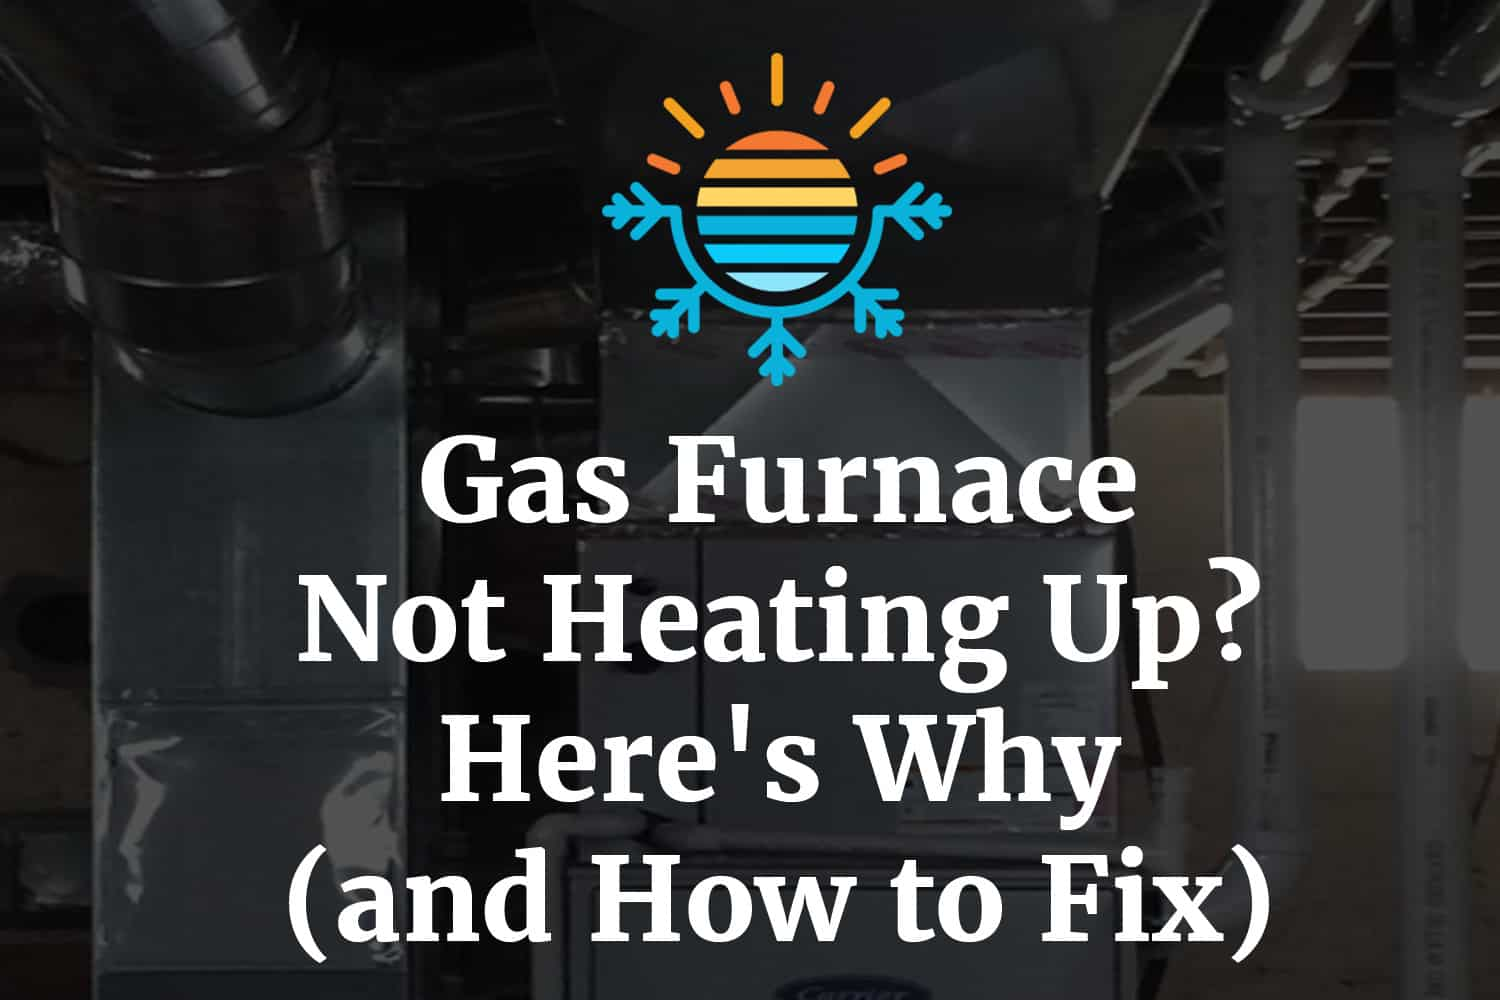 Gas furnace not heating up